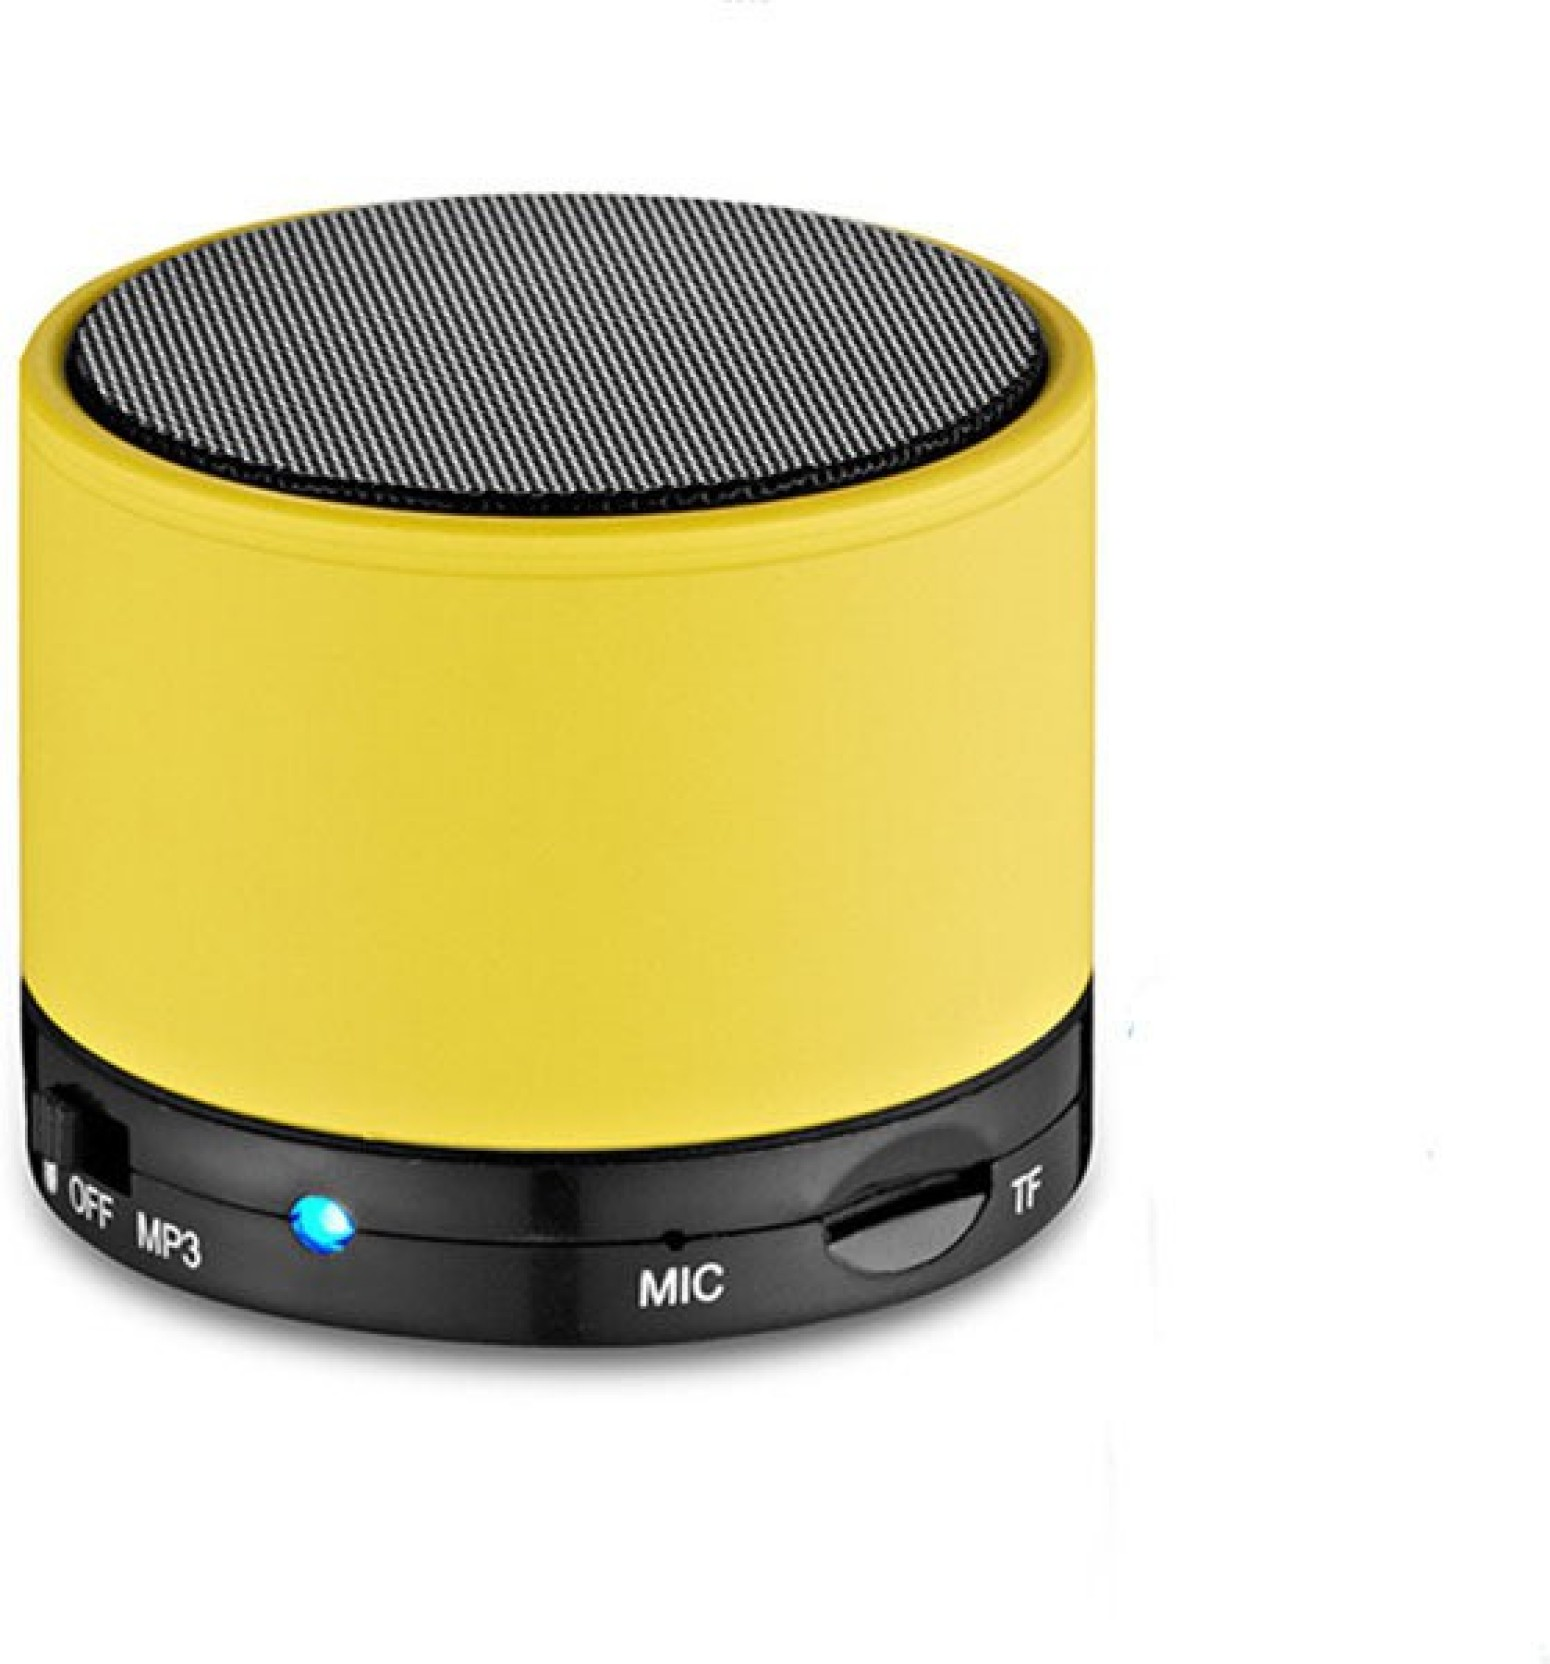 Buy Surety Bluetooth Wireless S10 Speaker With Usb Micro Sd Add To Cart